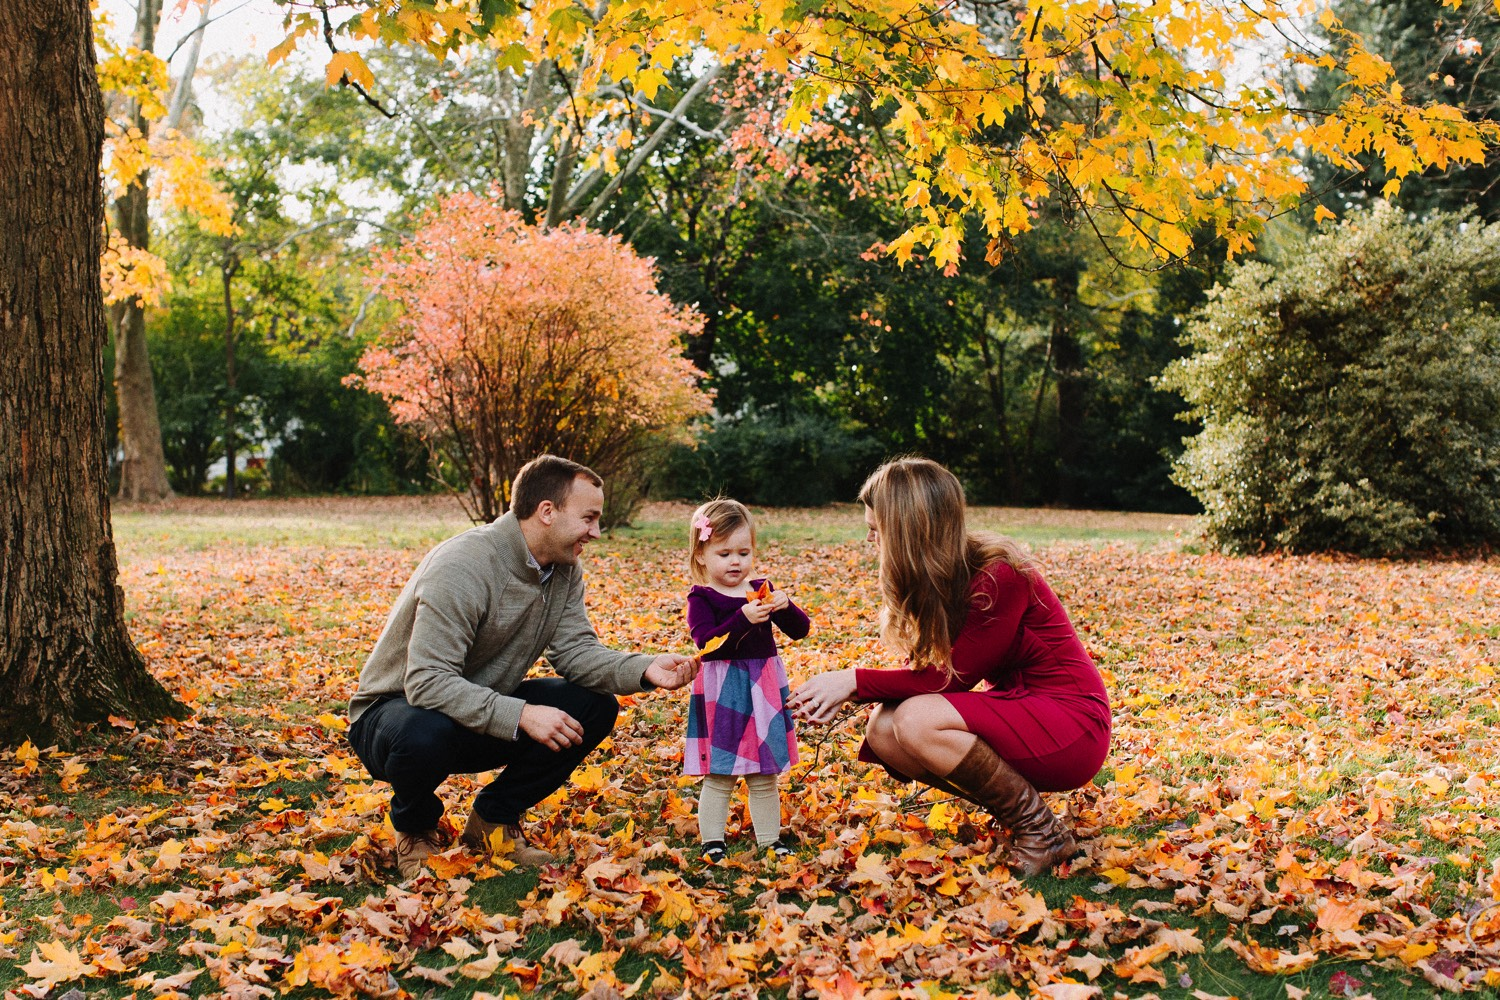 0003_17_11_04_morris_family0022_photography,_fall_leaves_kids_family.jpg